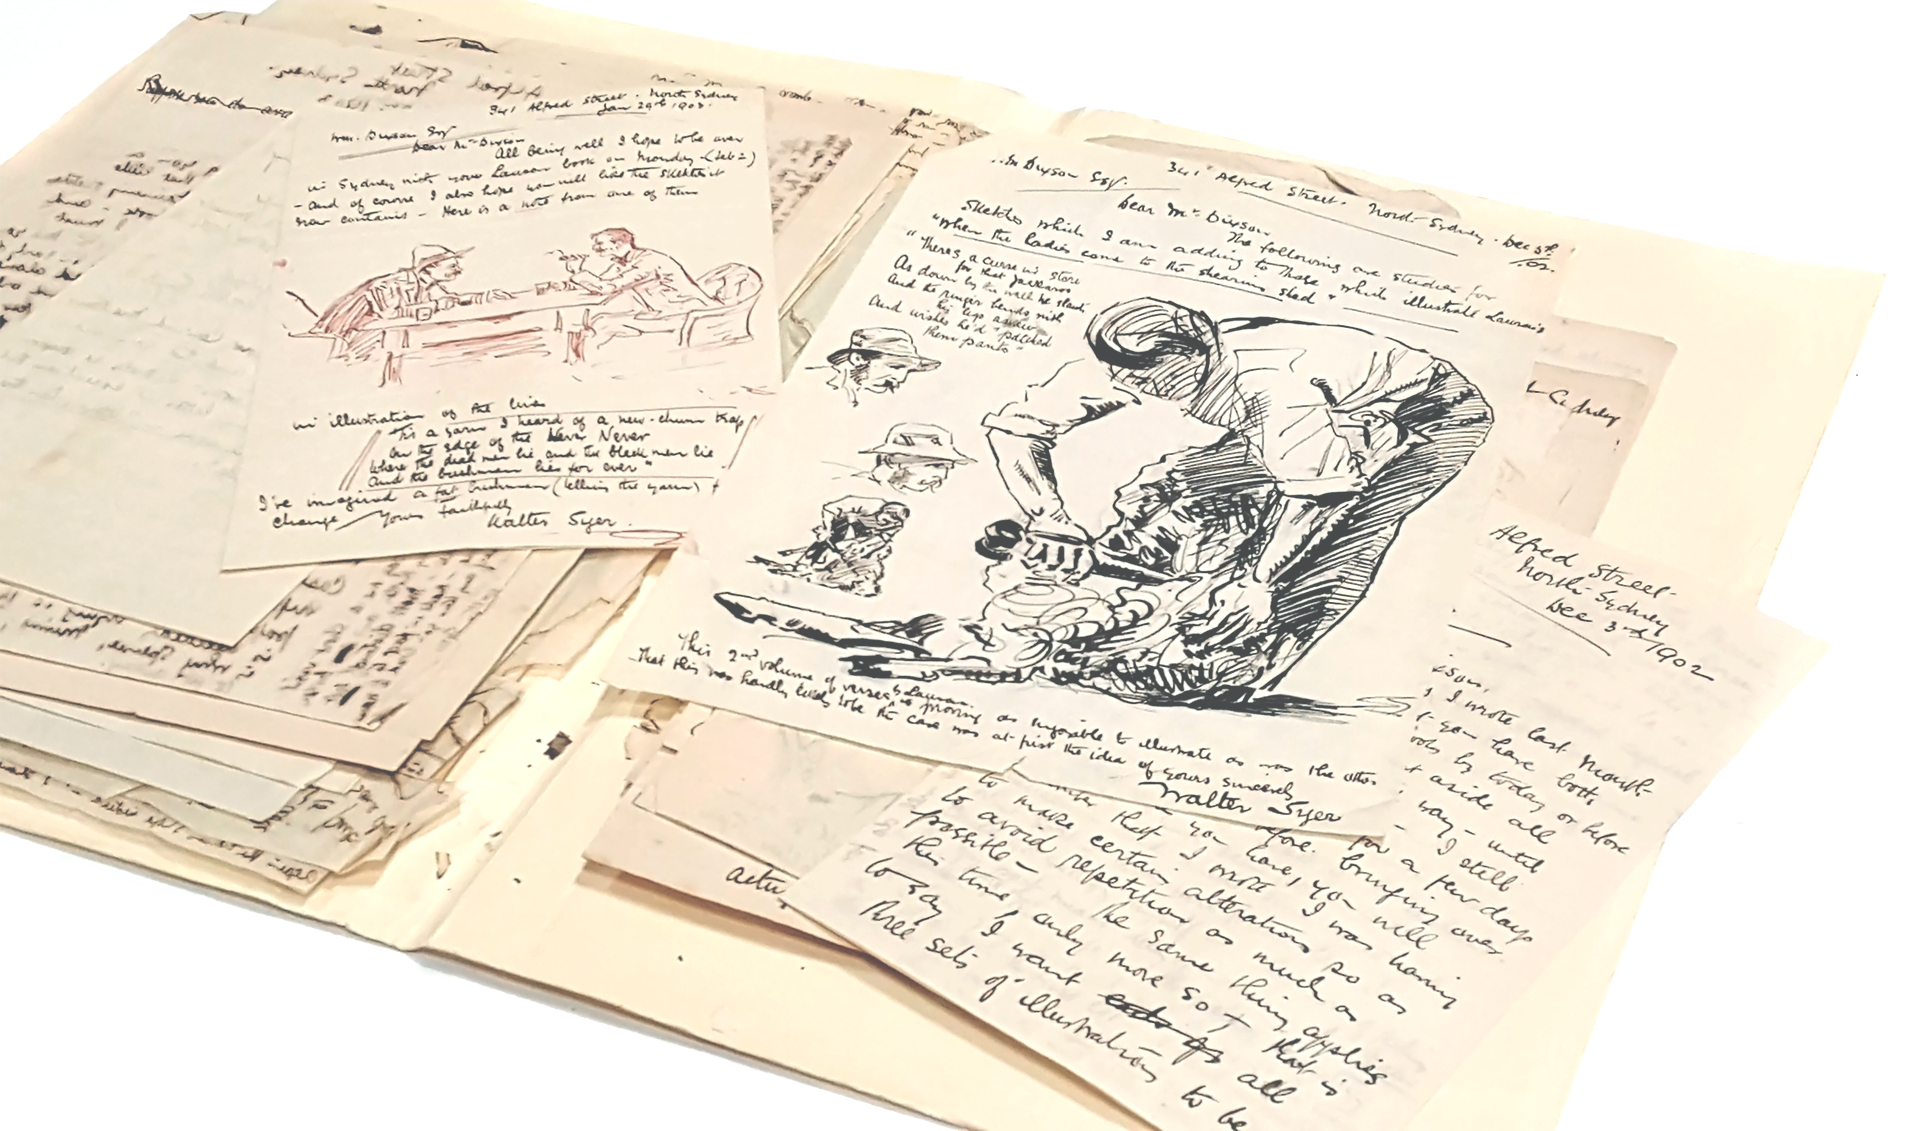 A collection of letters, with hand drawings.